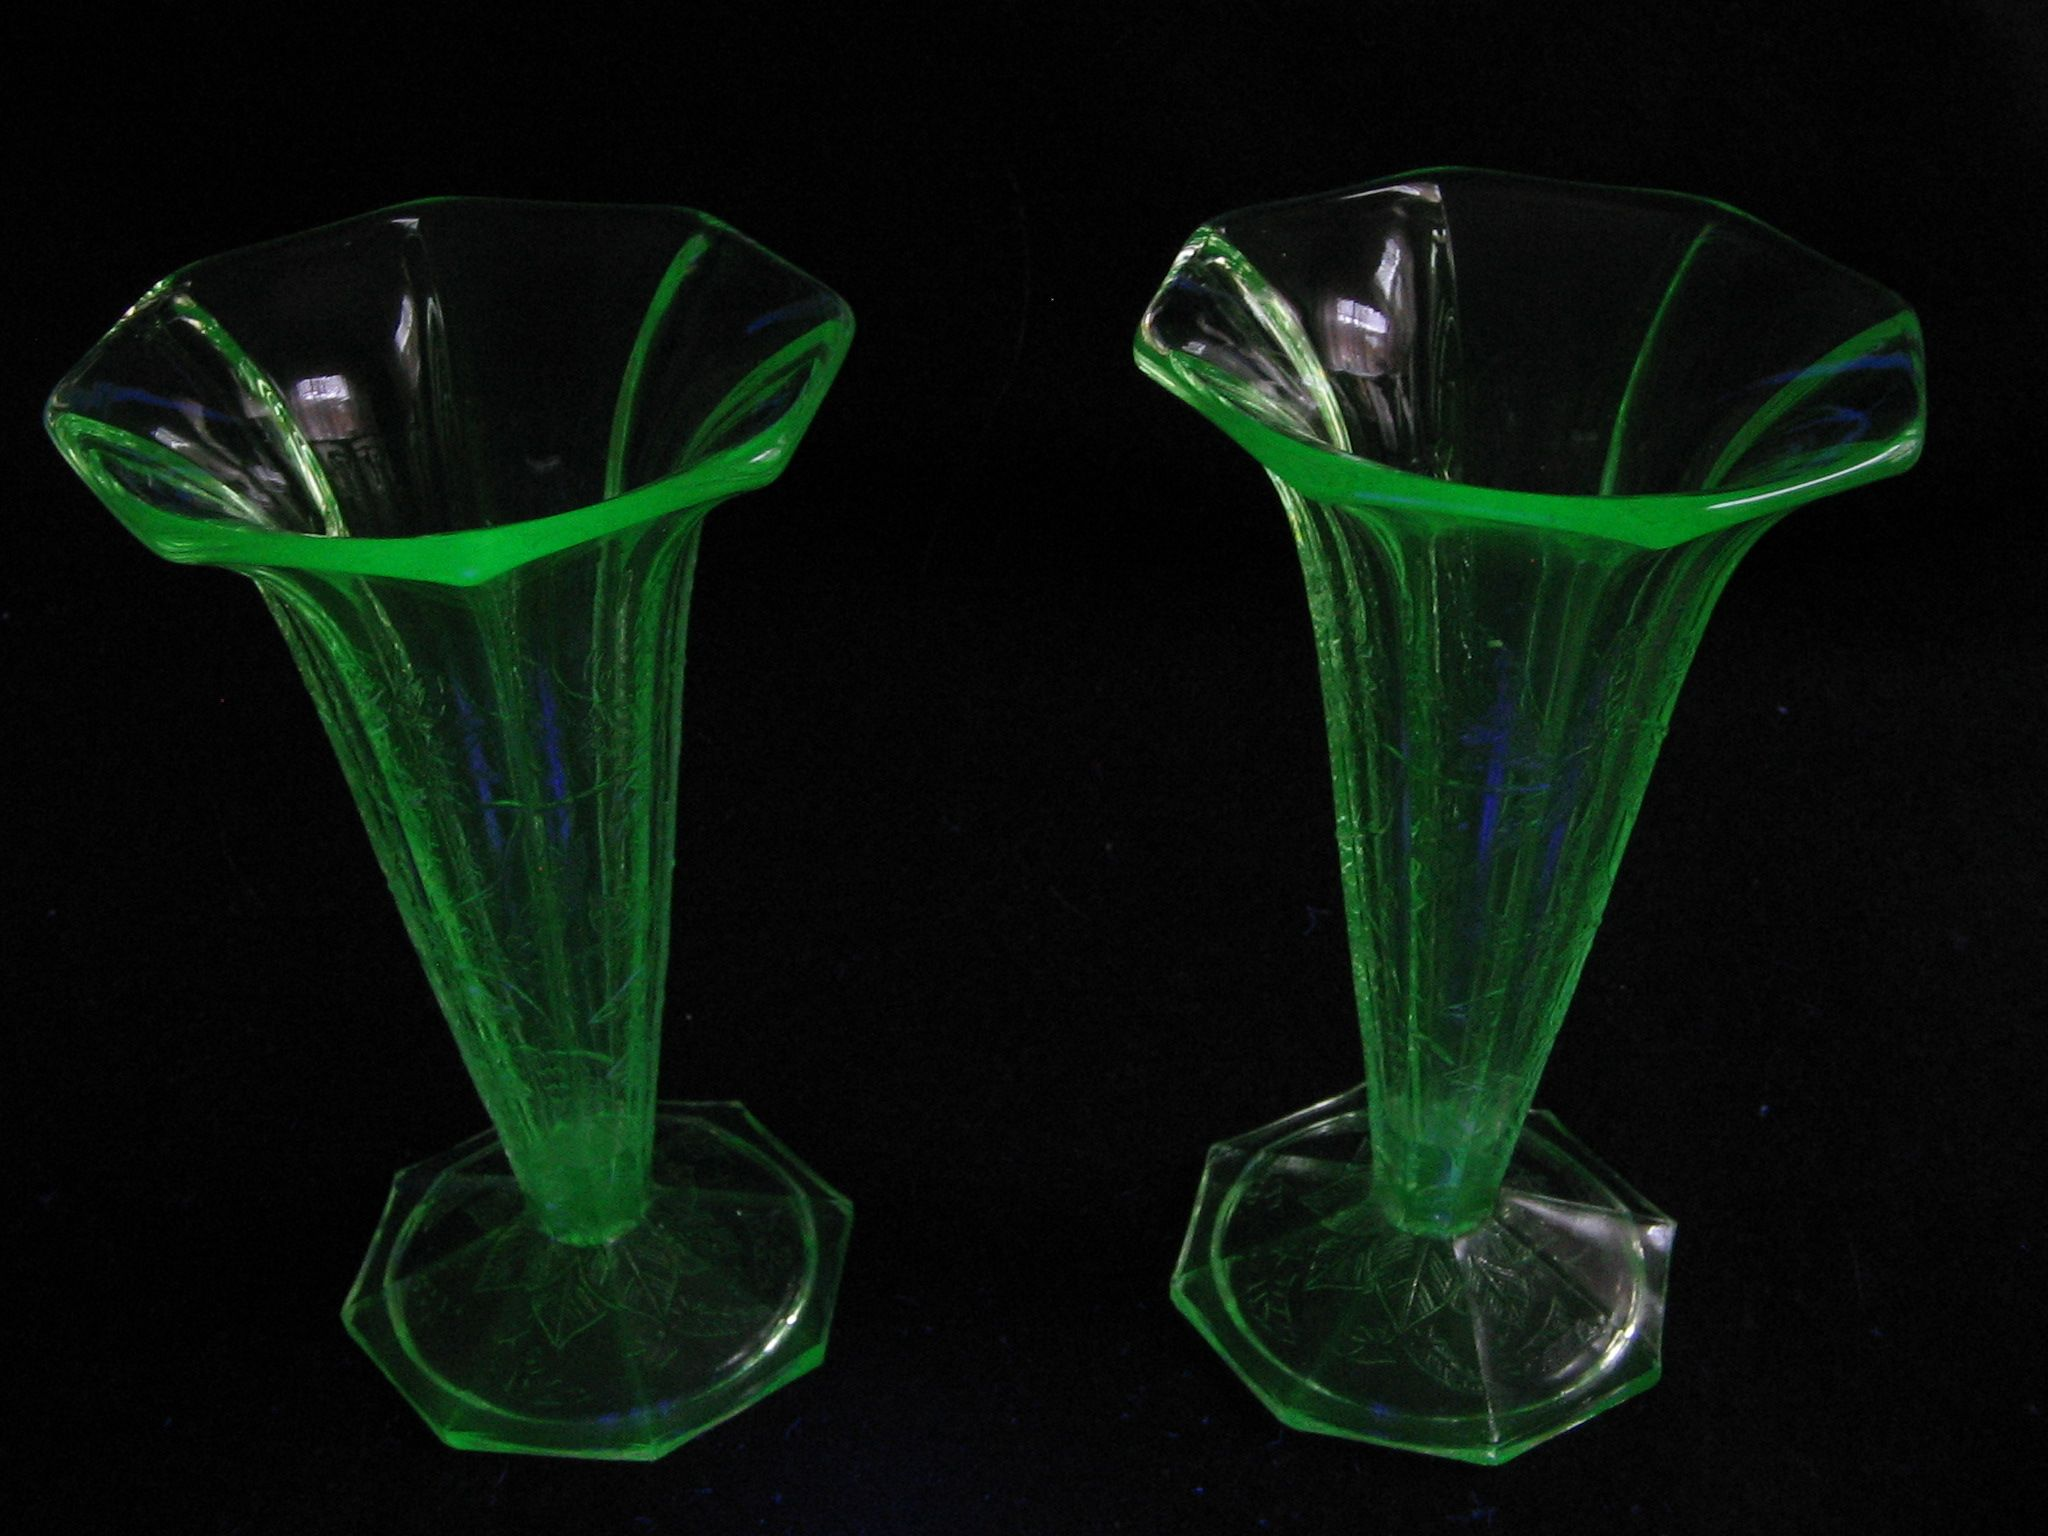 Pair depression glass vases floral pattern by jeannette glass pair depression glass vases floral pattern by jeannette glass reviewsmspy